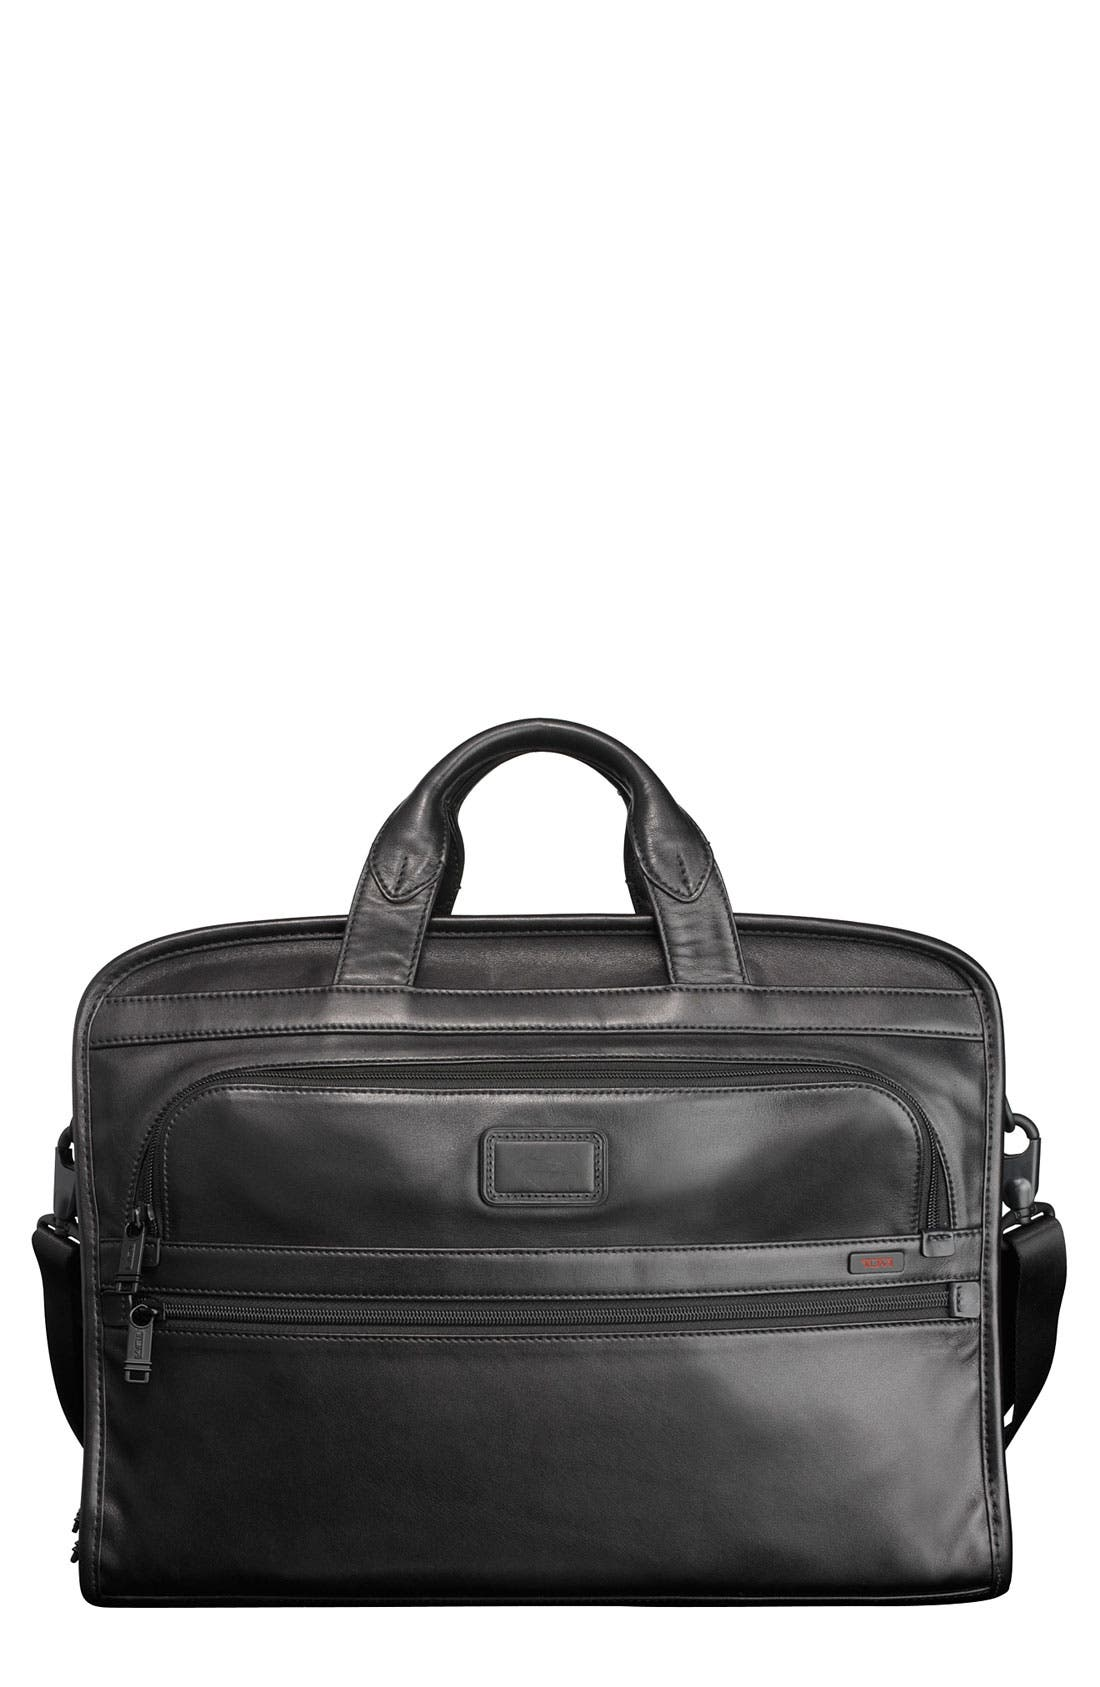 Main Image - Tumi 'Alpha' Slim Large Screen Computer Portfolio Leather Briefcase